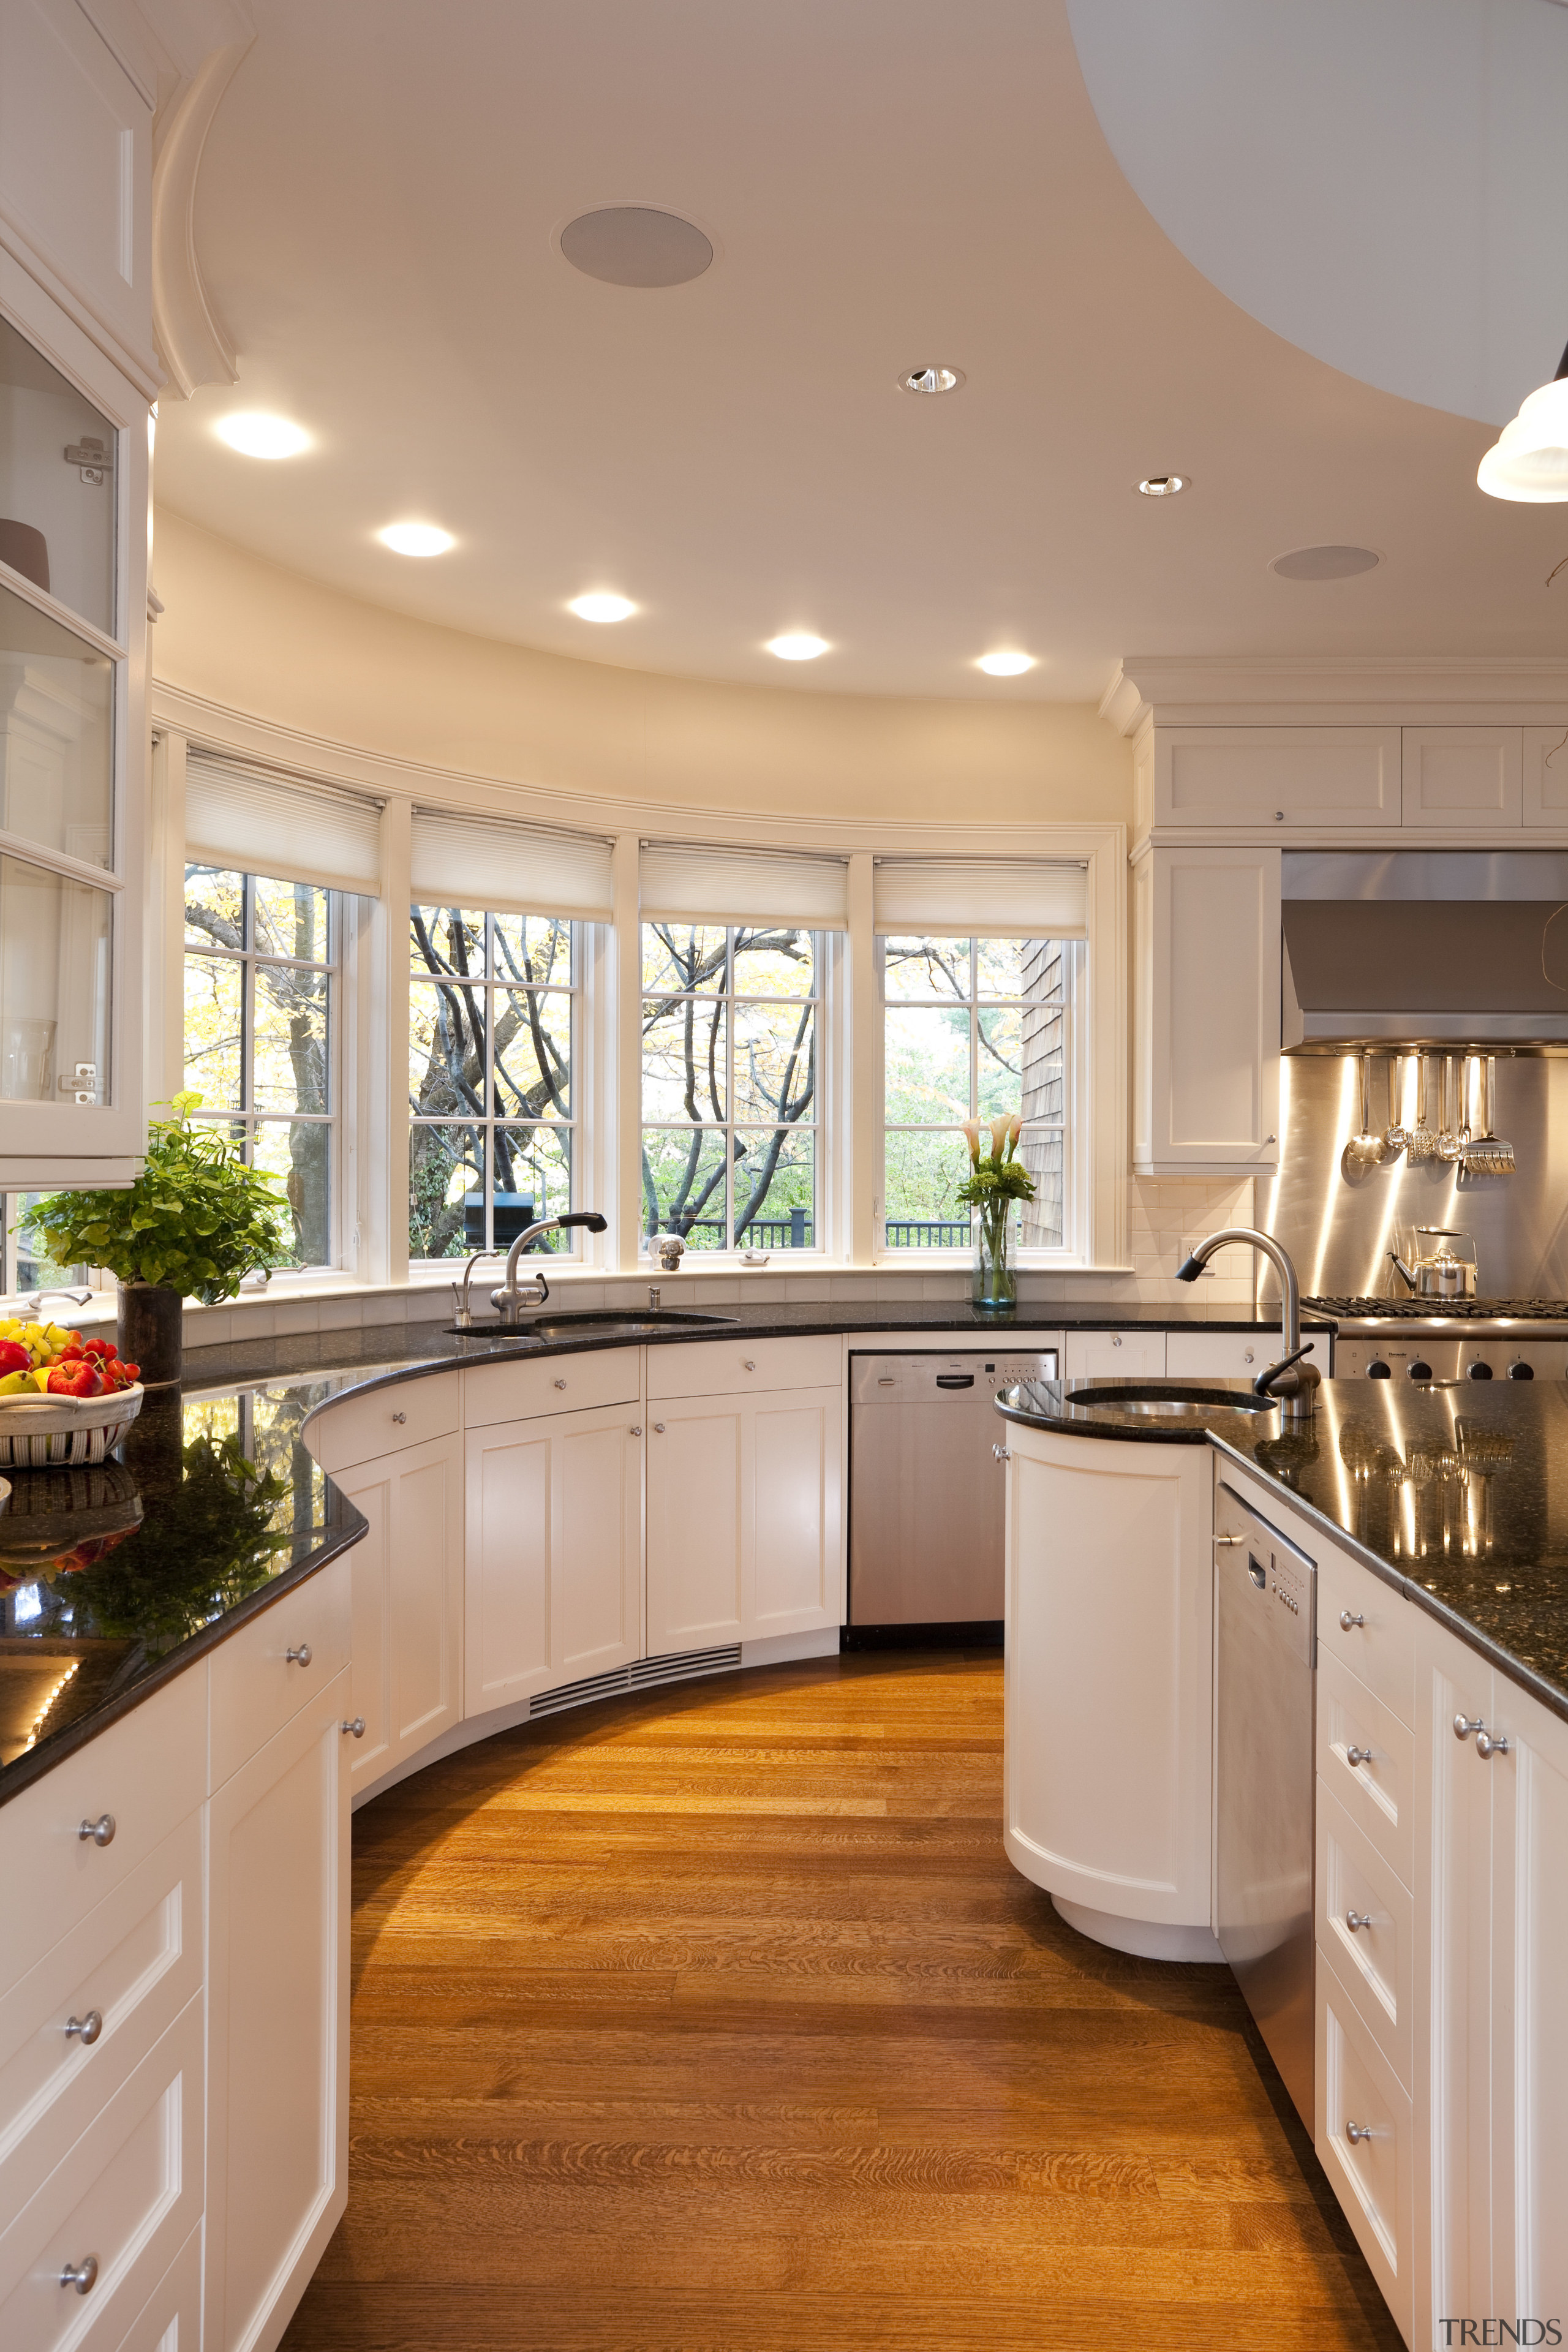 Circular Kitchen White Cabinets D Gallery 3 Trends